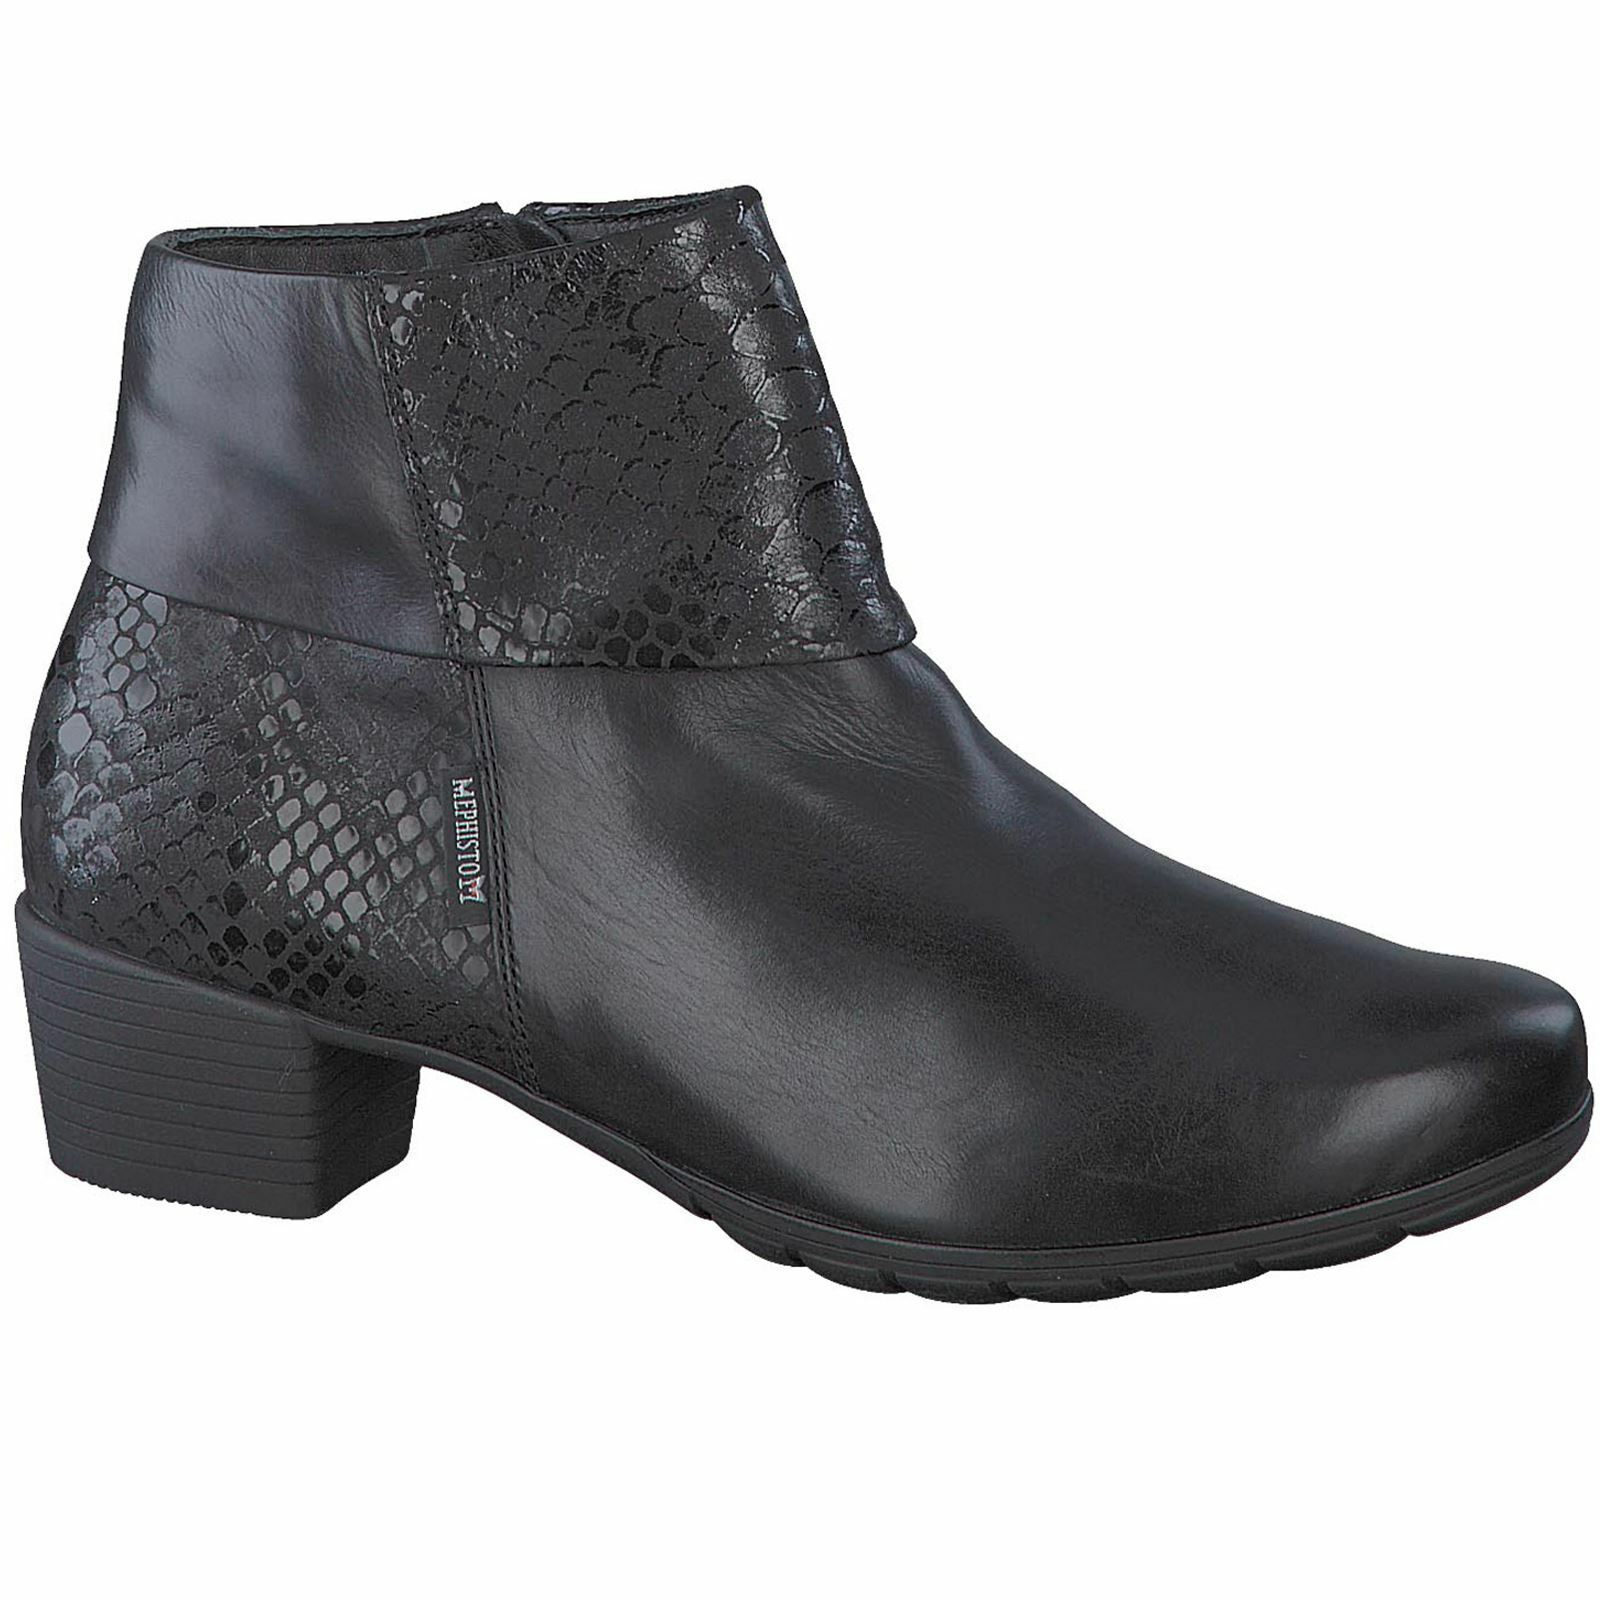 Mephisto Iris Black Womens Leather Zip-up Ankle Boots